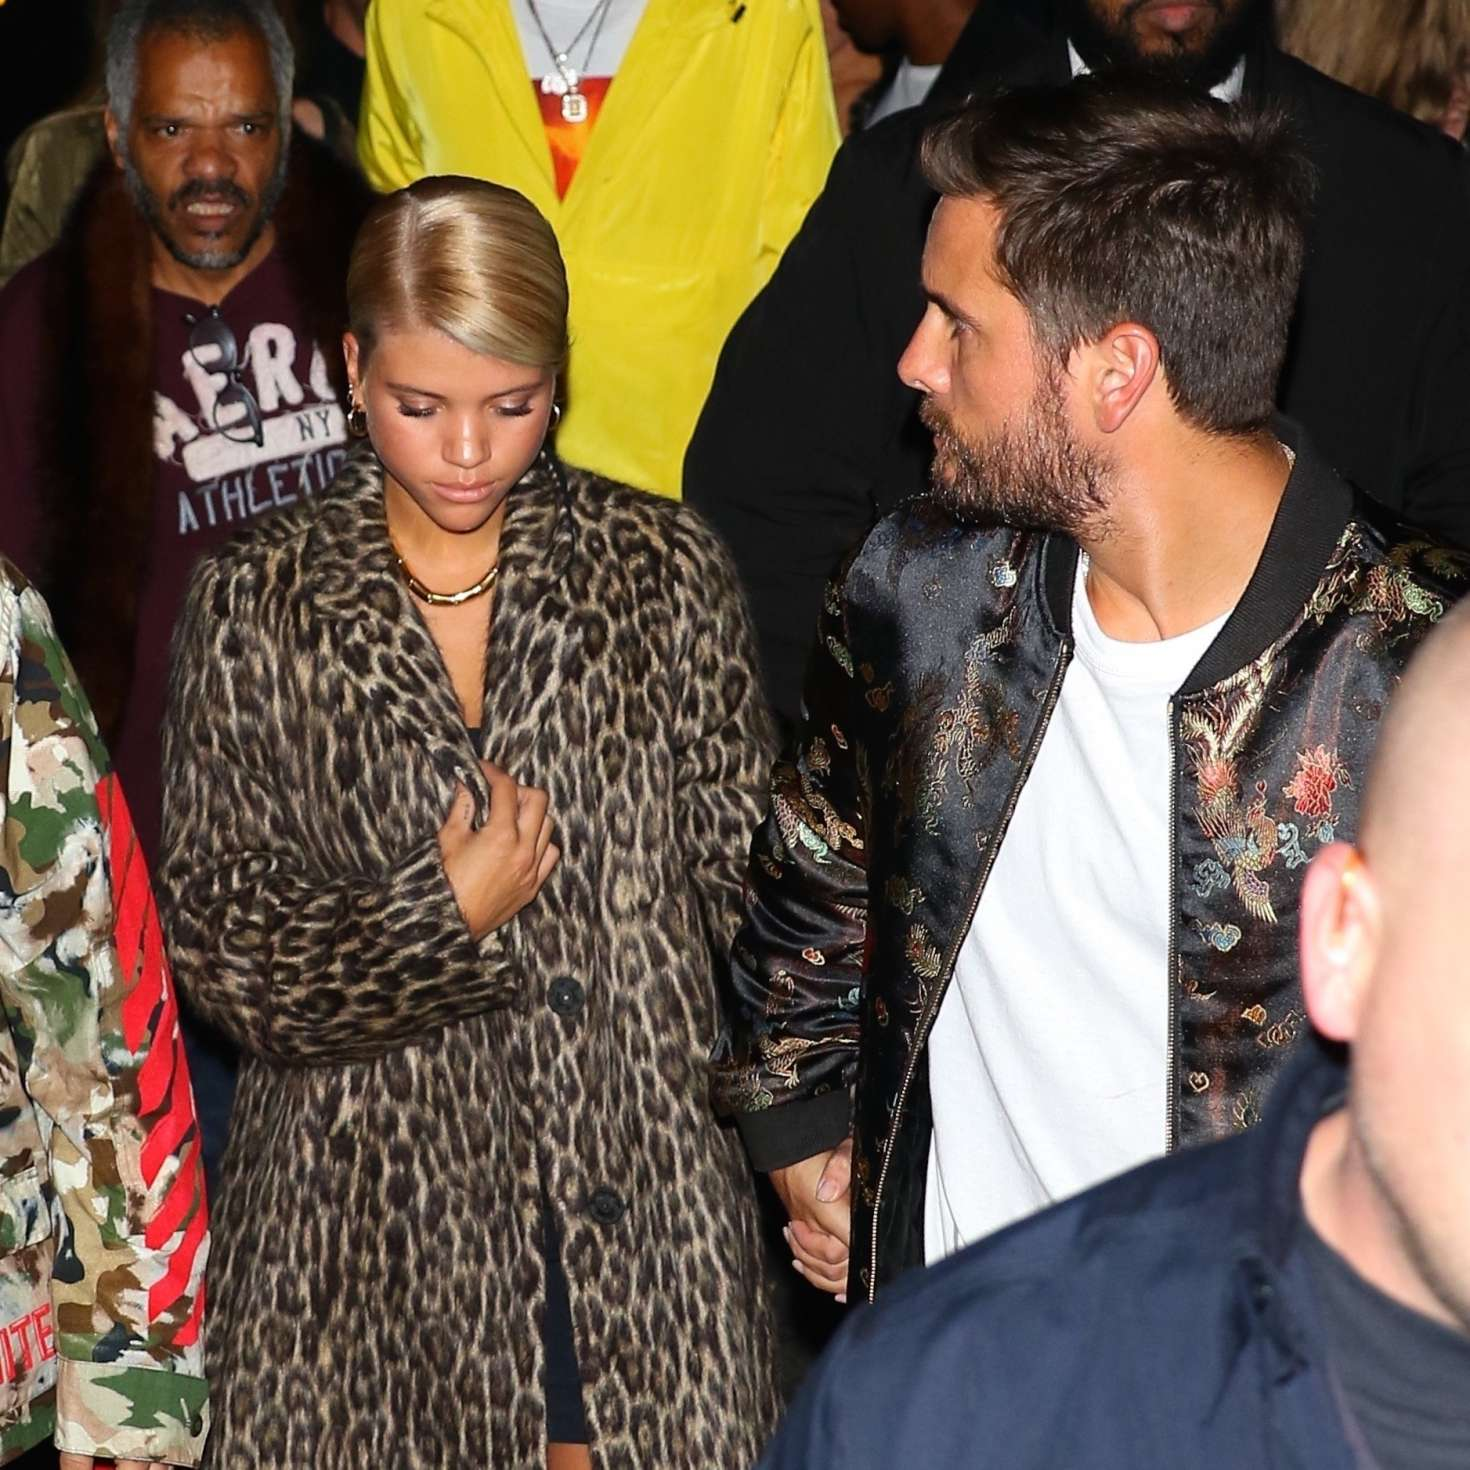 Sofia Richie 2017 : Sofia Richie out for the party in New York -03